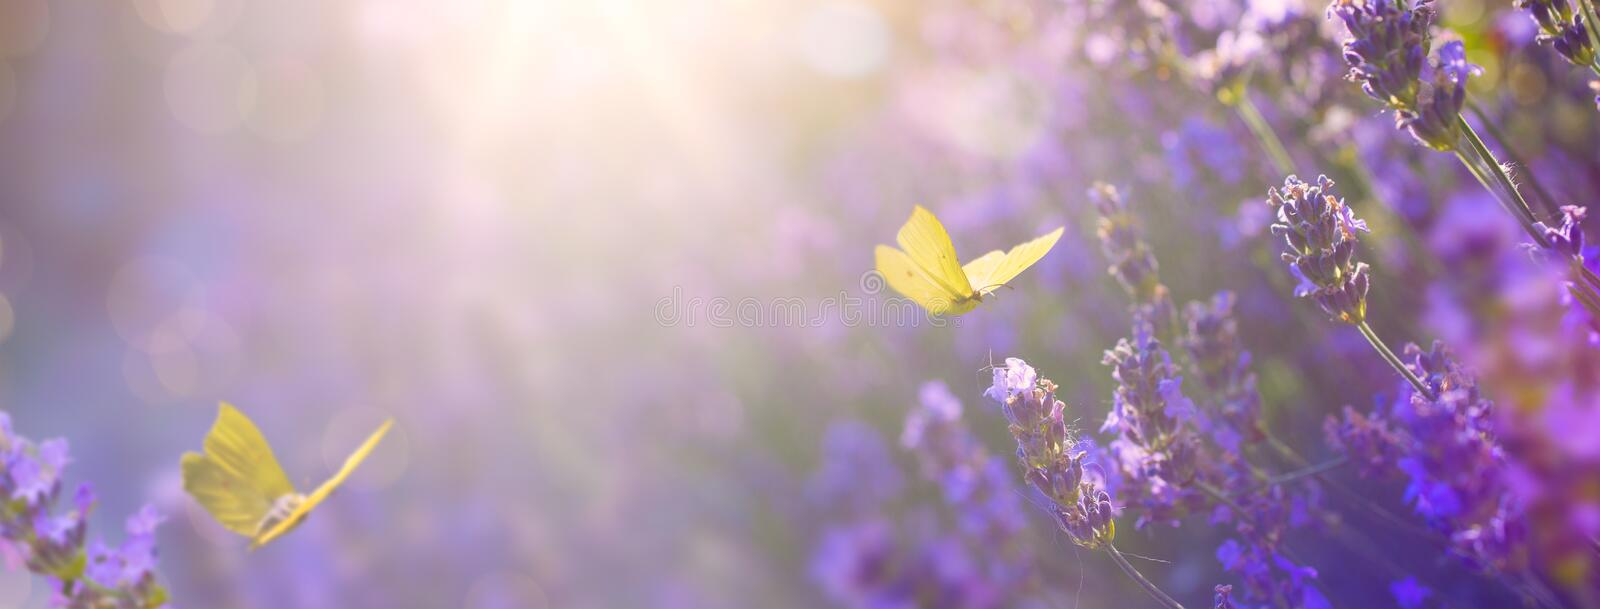 Art Summer floral landscape; beautiful summer lavender flower and fly butterfly against evening sunny sky; nature landscape stock images